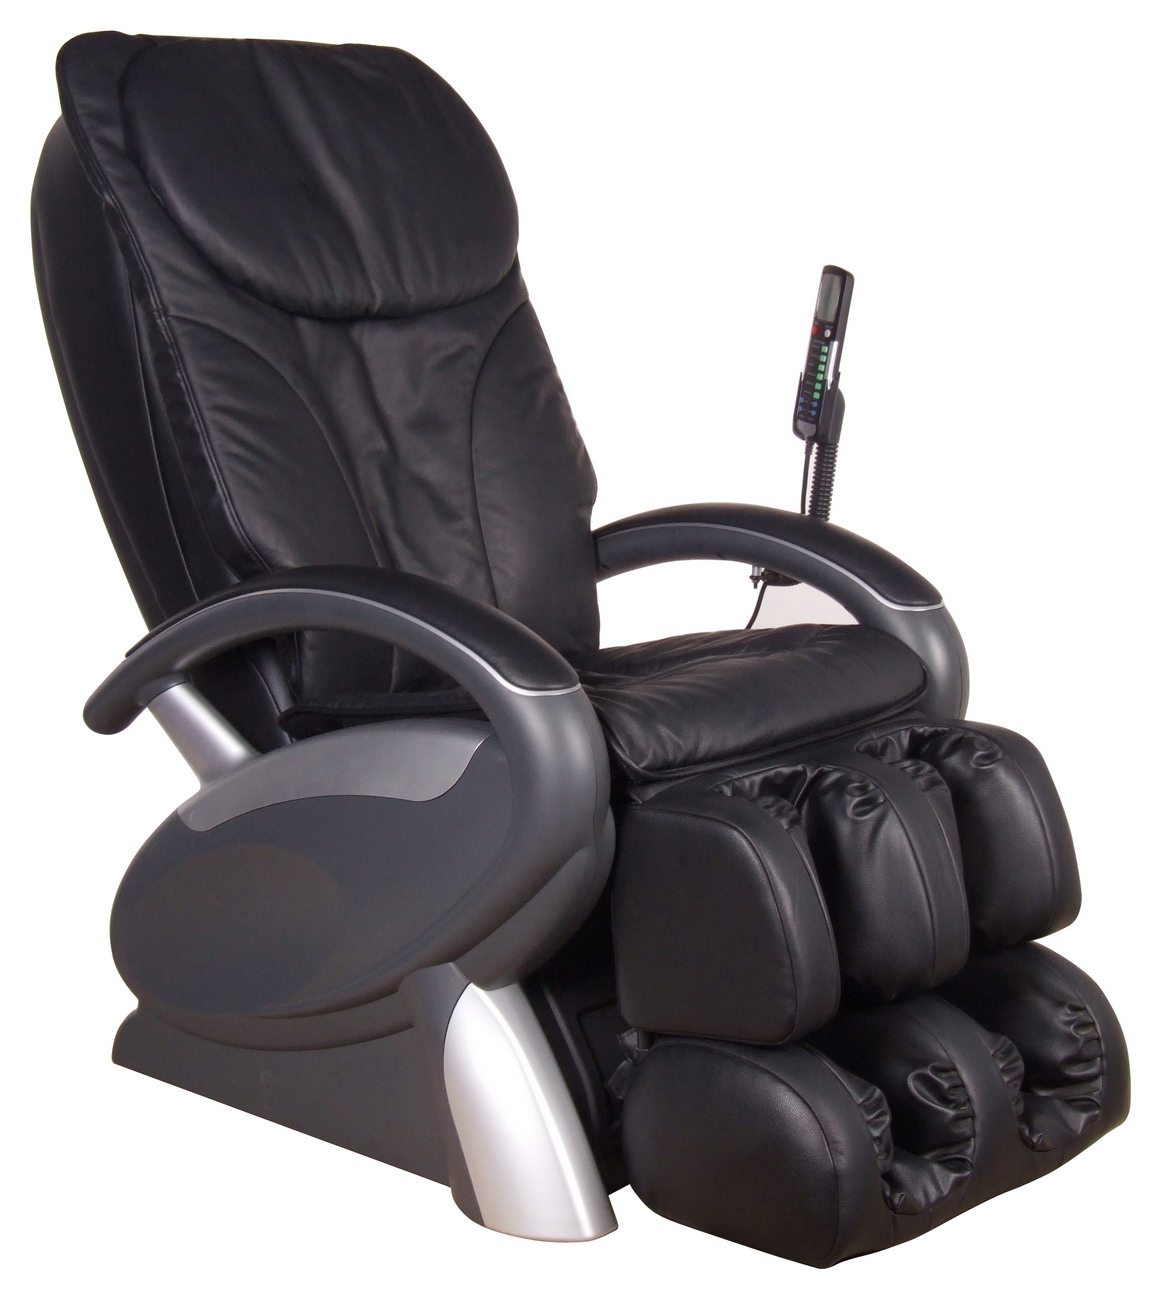 Image of: Massage Recliner Chair Model